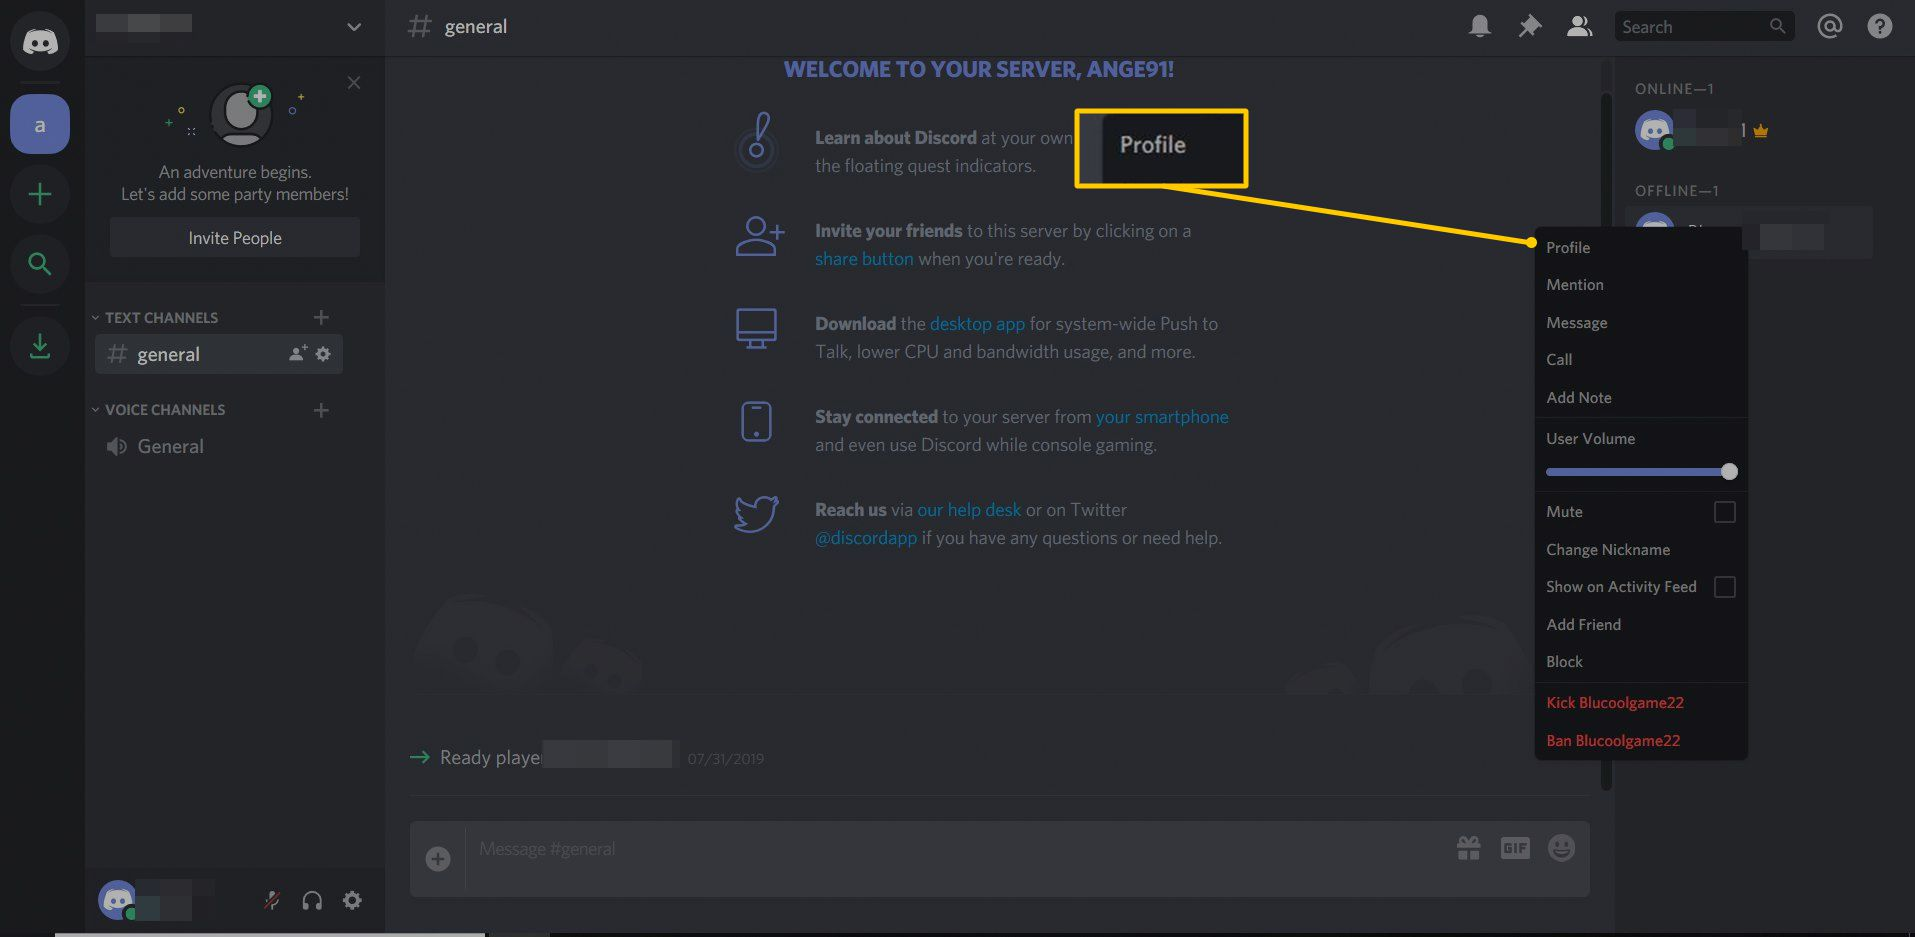 How to Add Someone on Discord